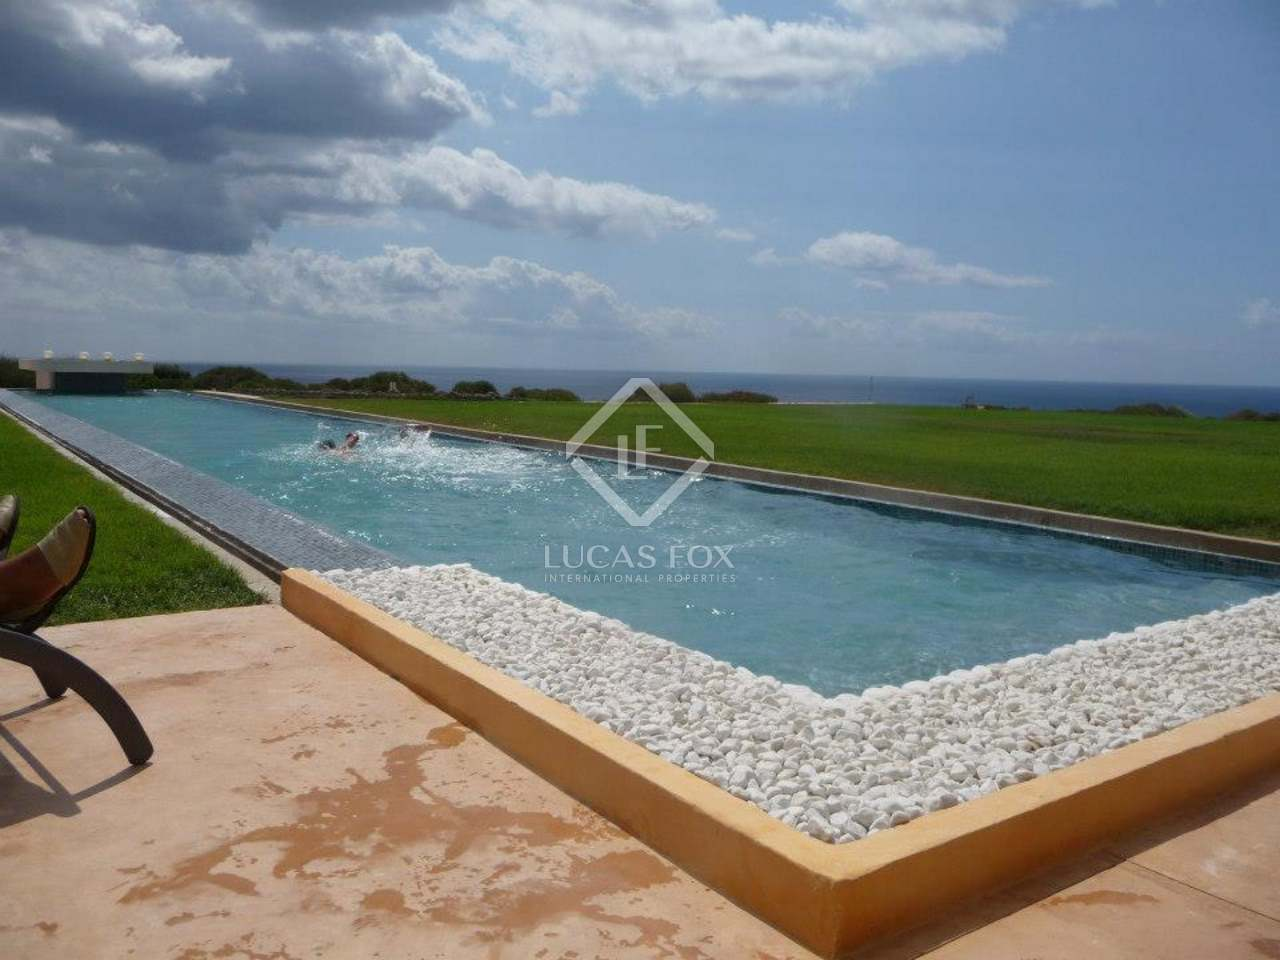 5 Bedroom Property For Sale On Menorca 39 S South East Coast